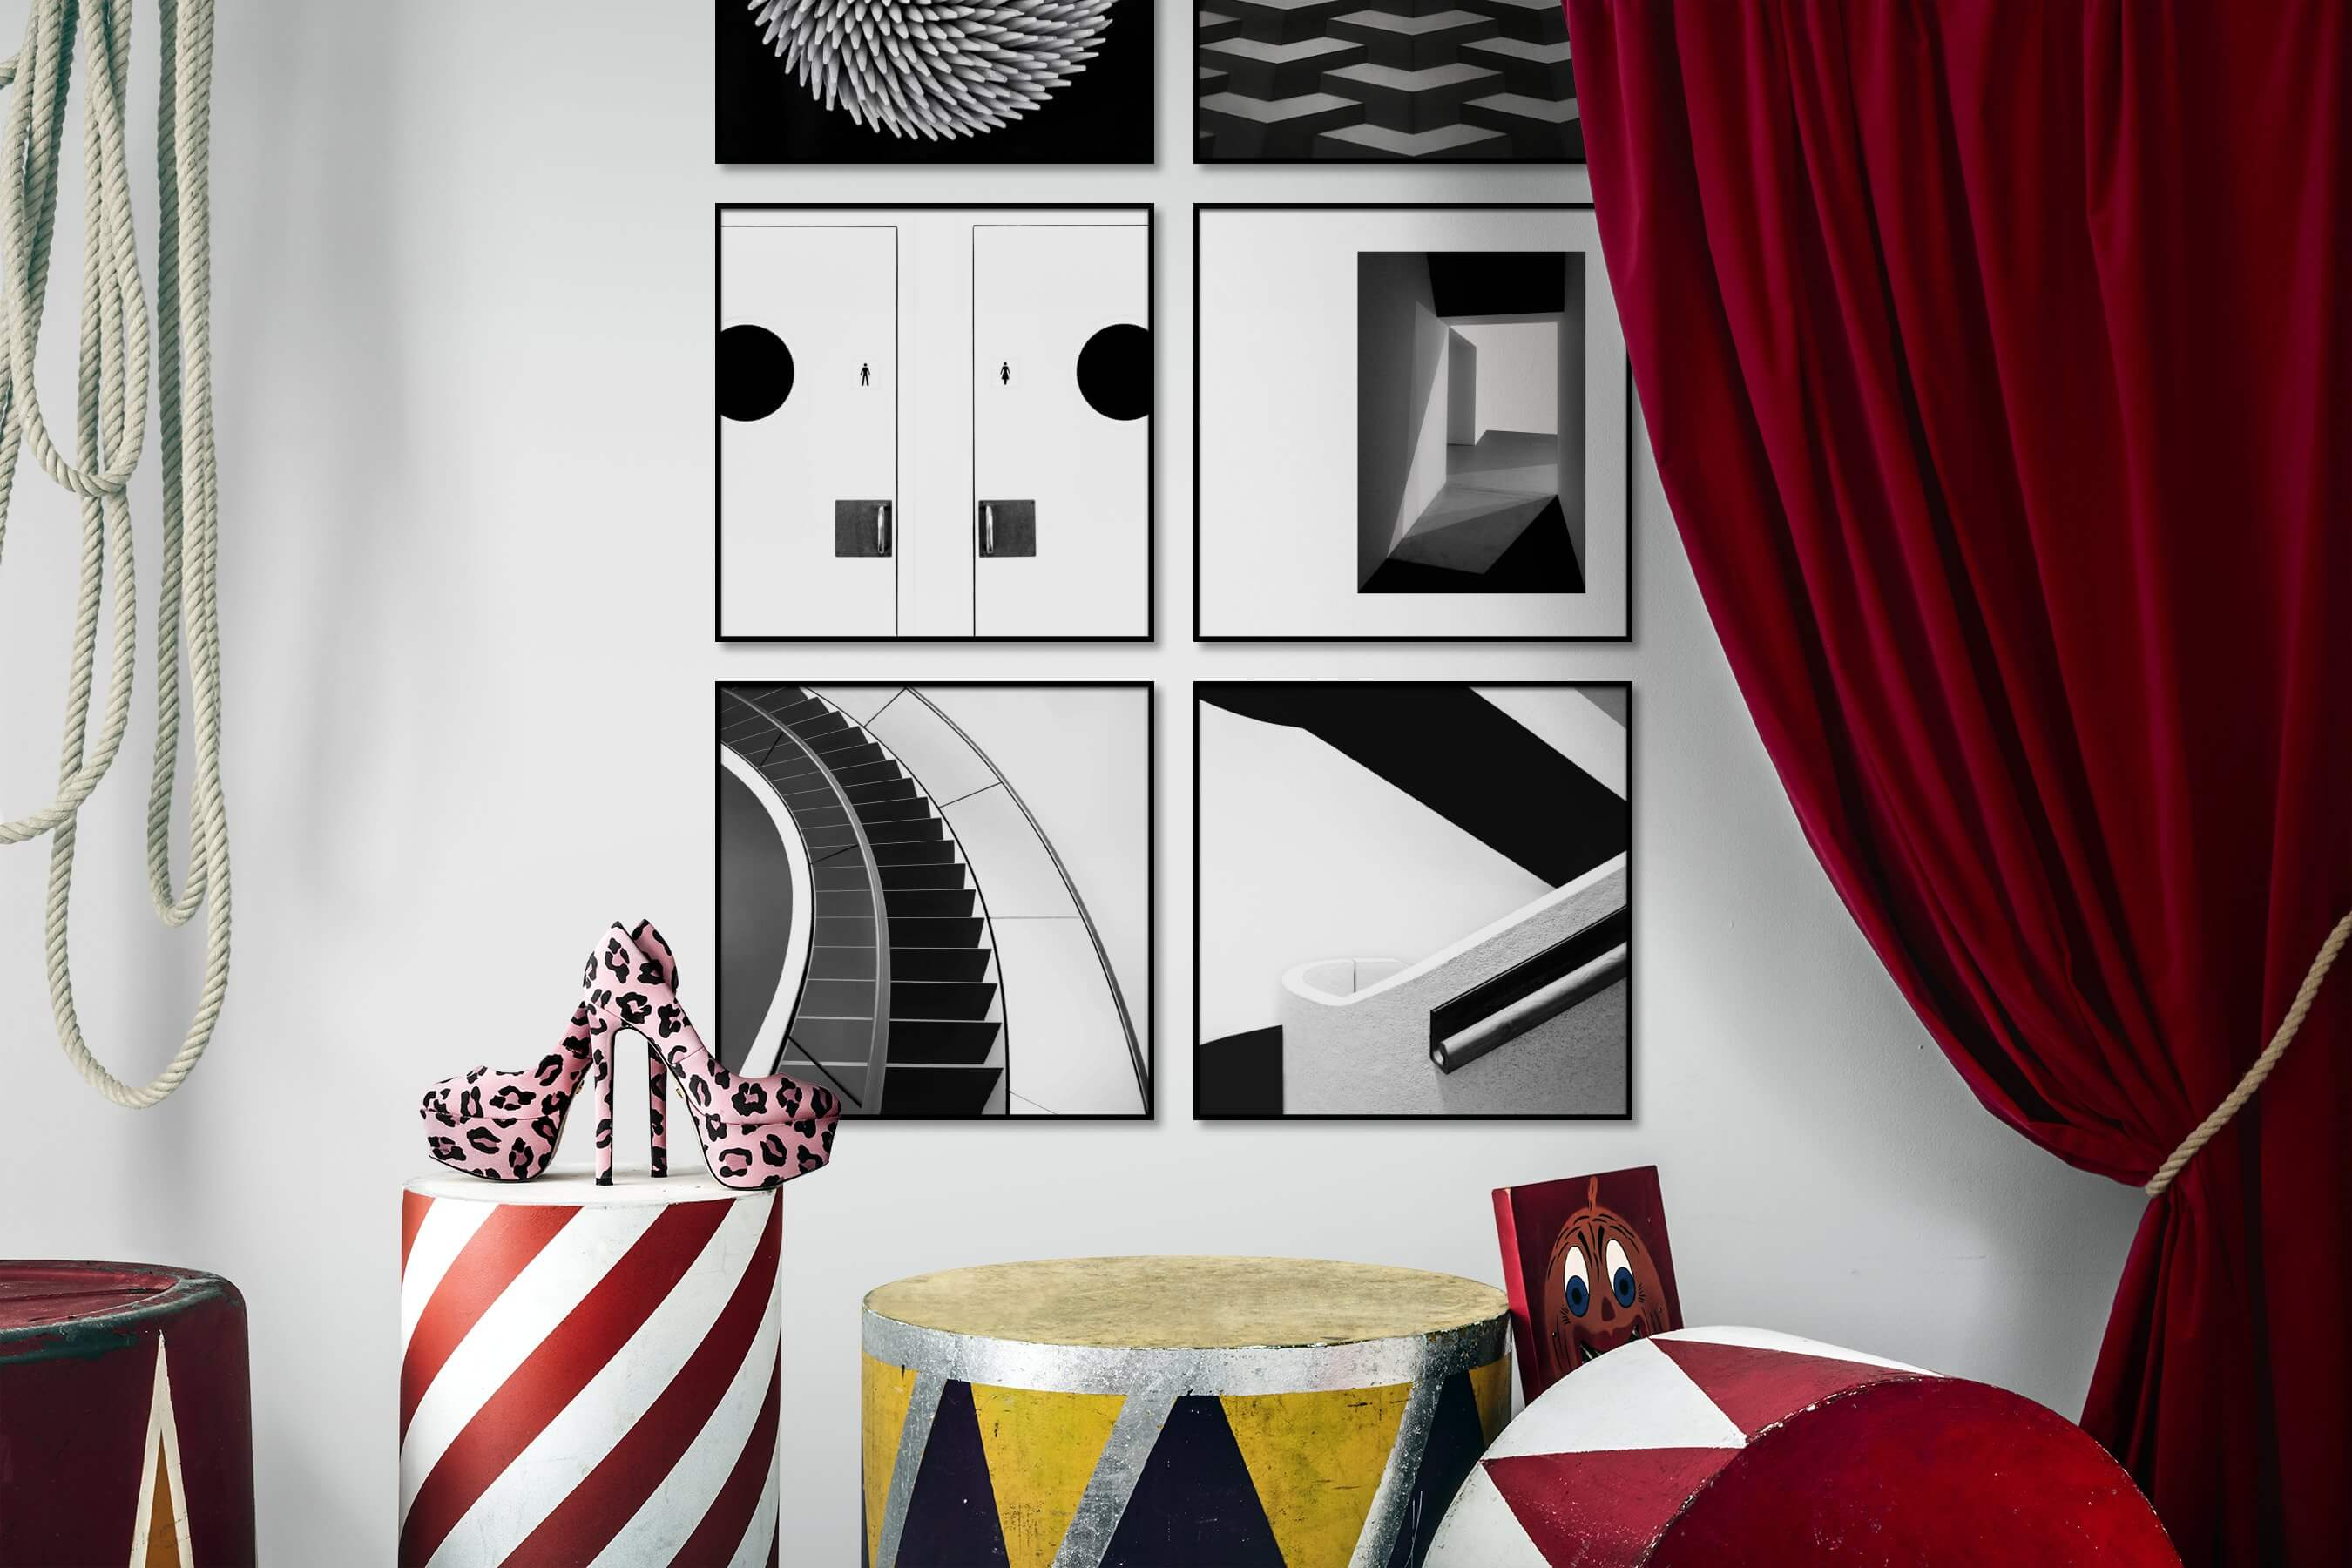 Gallery wall idea with six framed pictures arranged on a wall depicting Black & White, For the Moderate, Bright Tones, and For the Minimalist